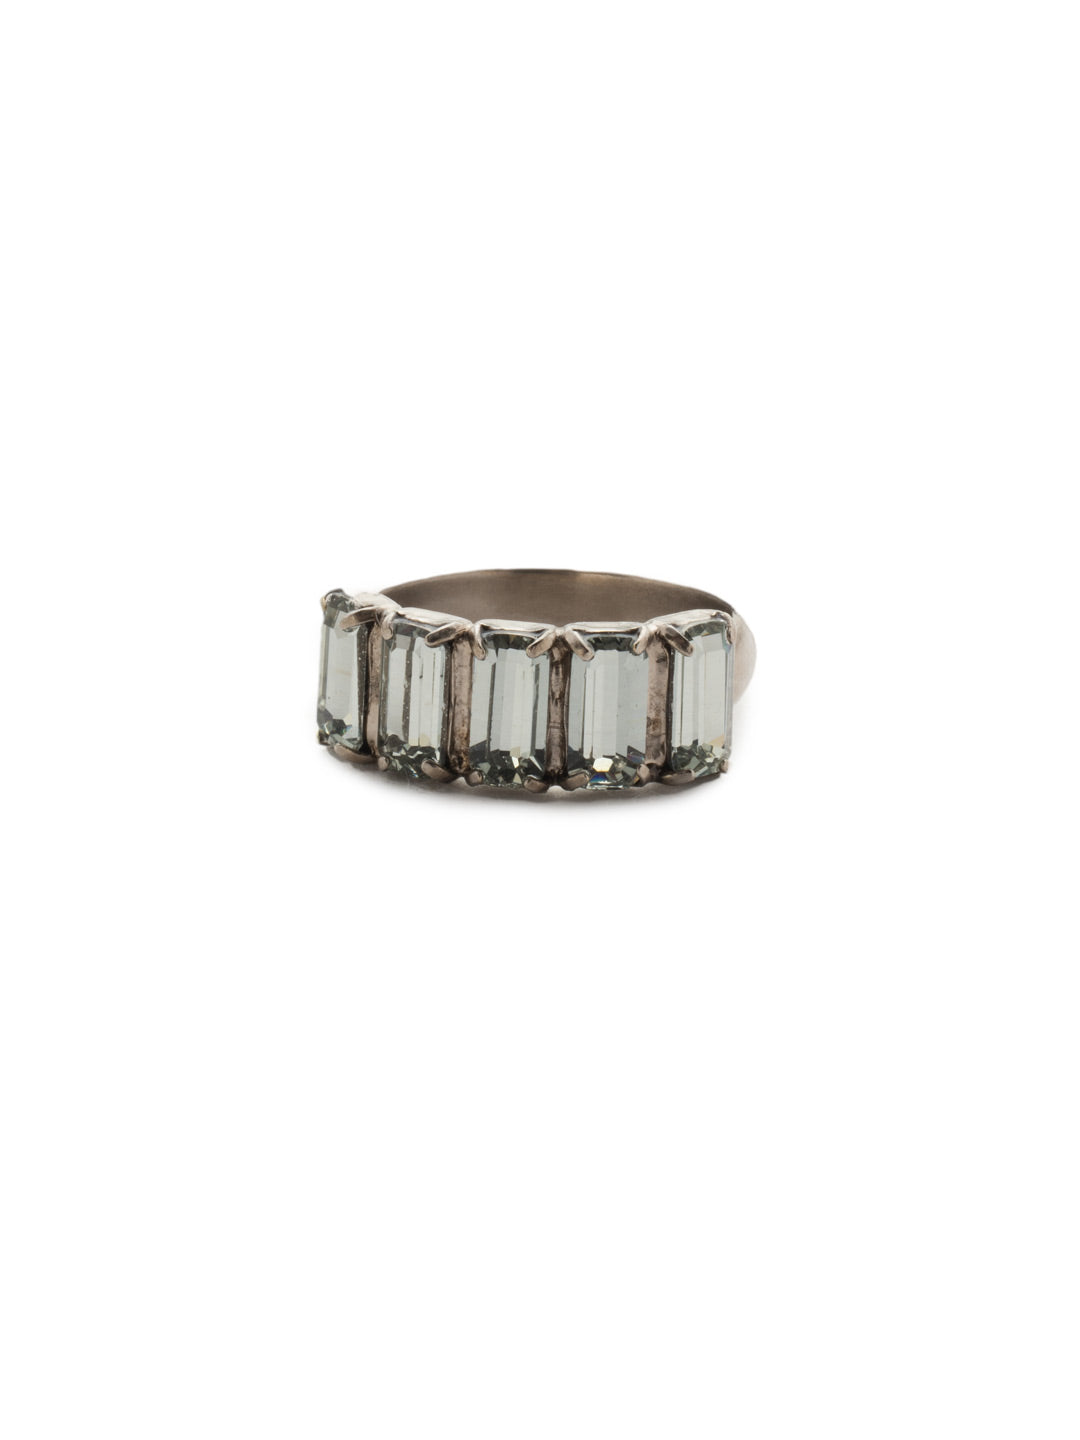 Arden Band Ring - REF29ASSTC